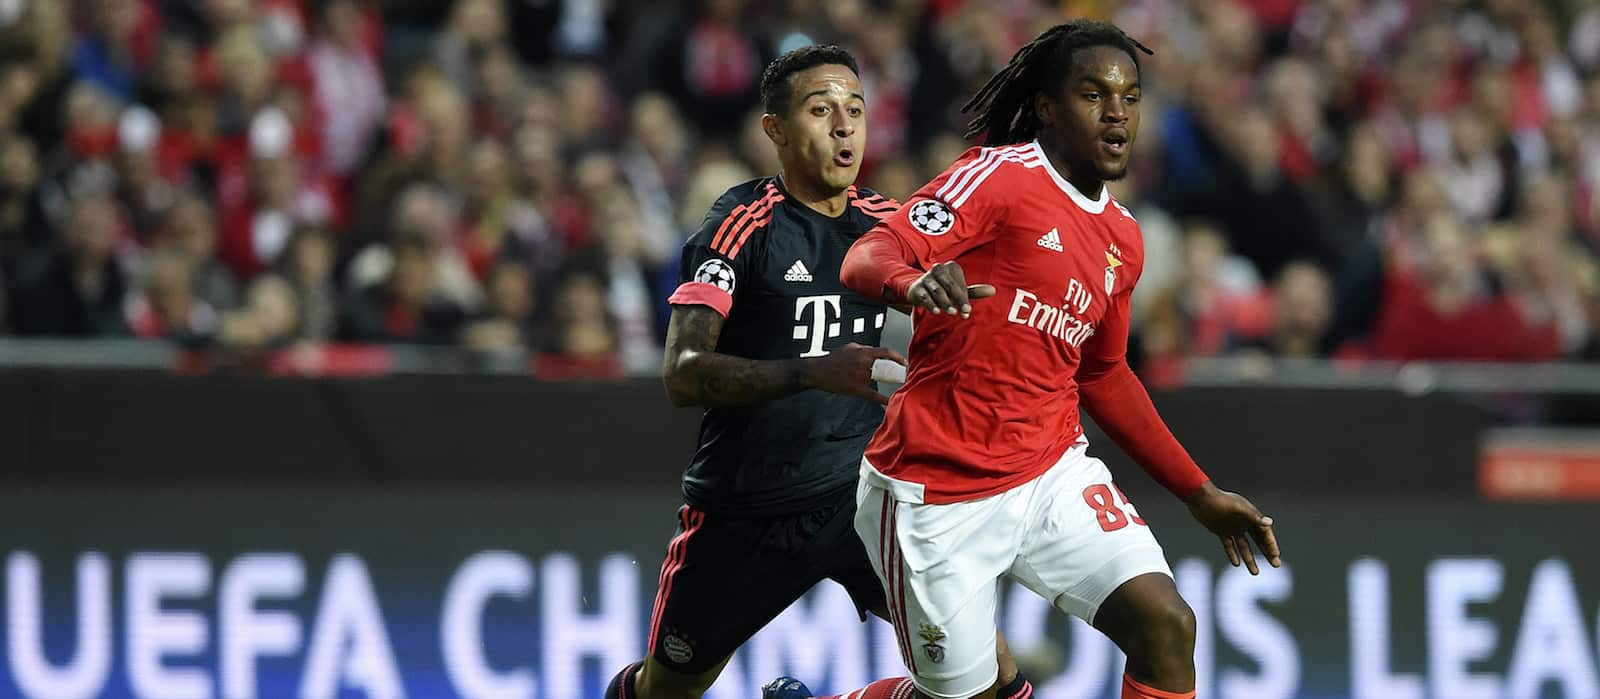 Carlo Ancelotti refuses to rule out selling Renato Sanches this summer